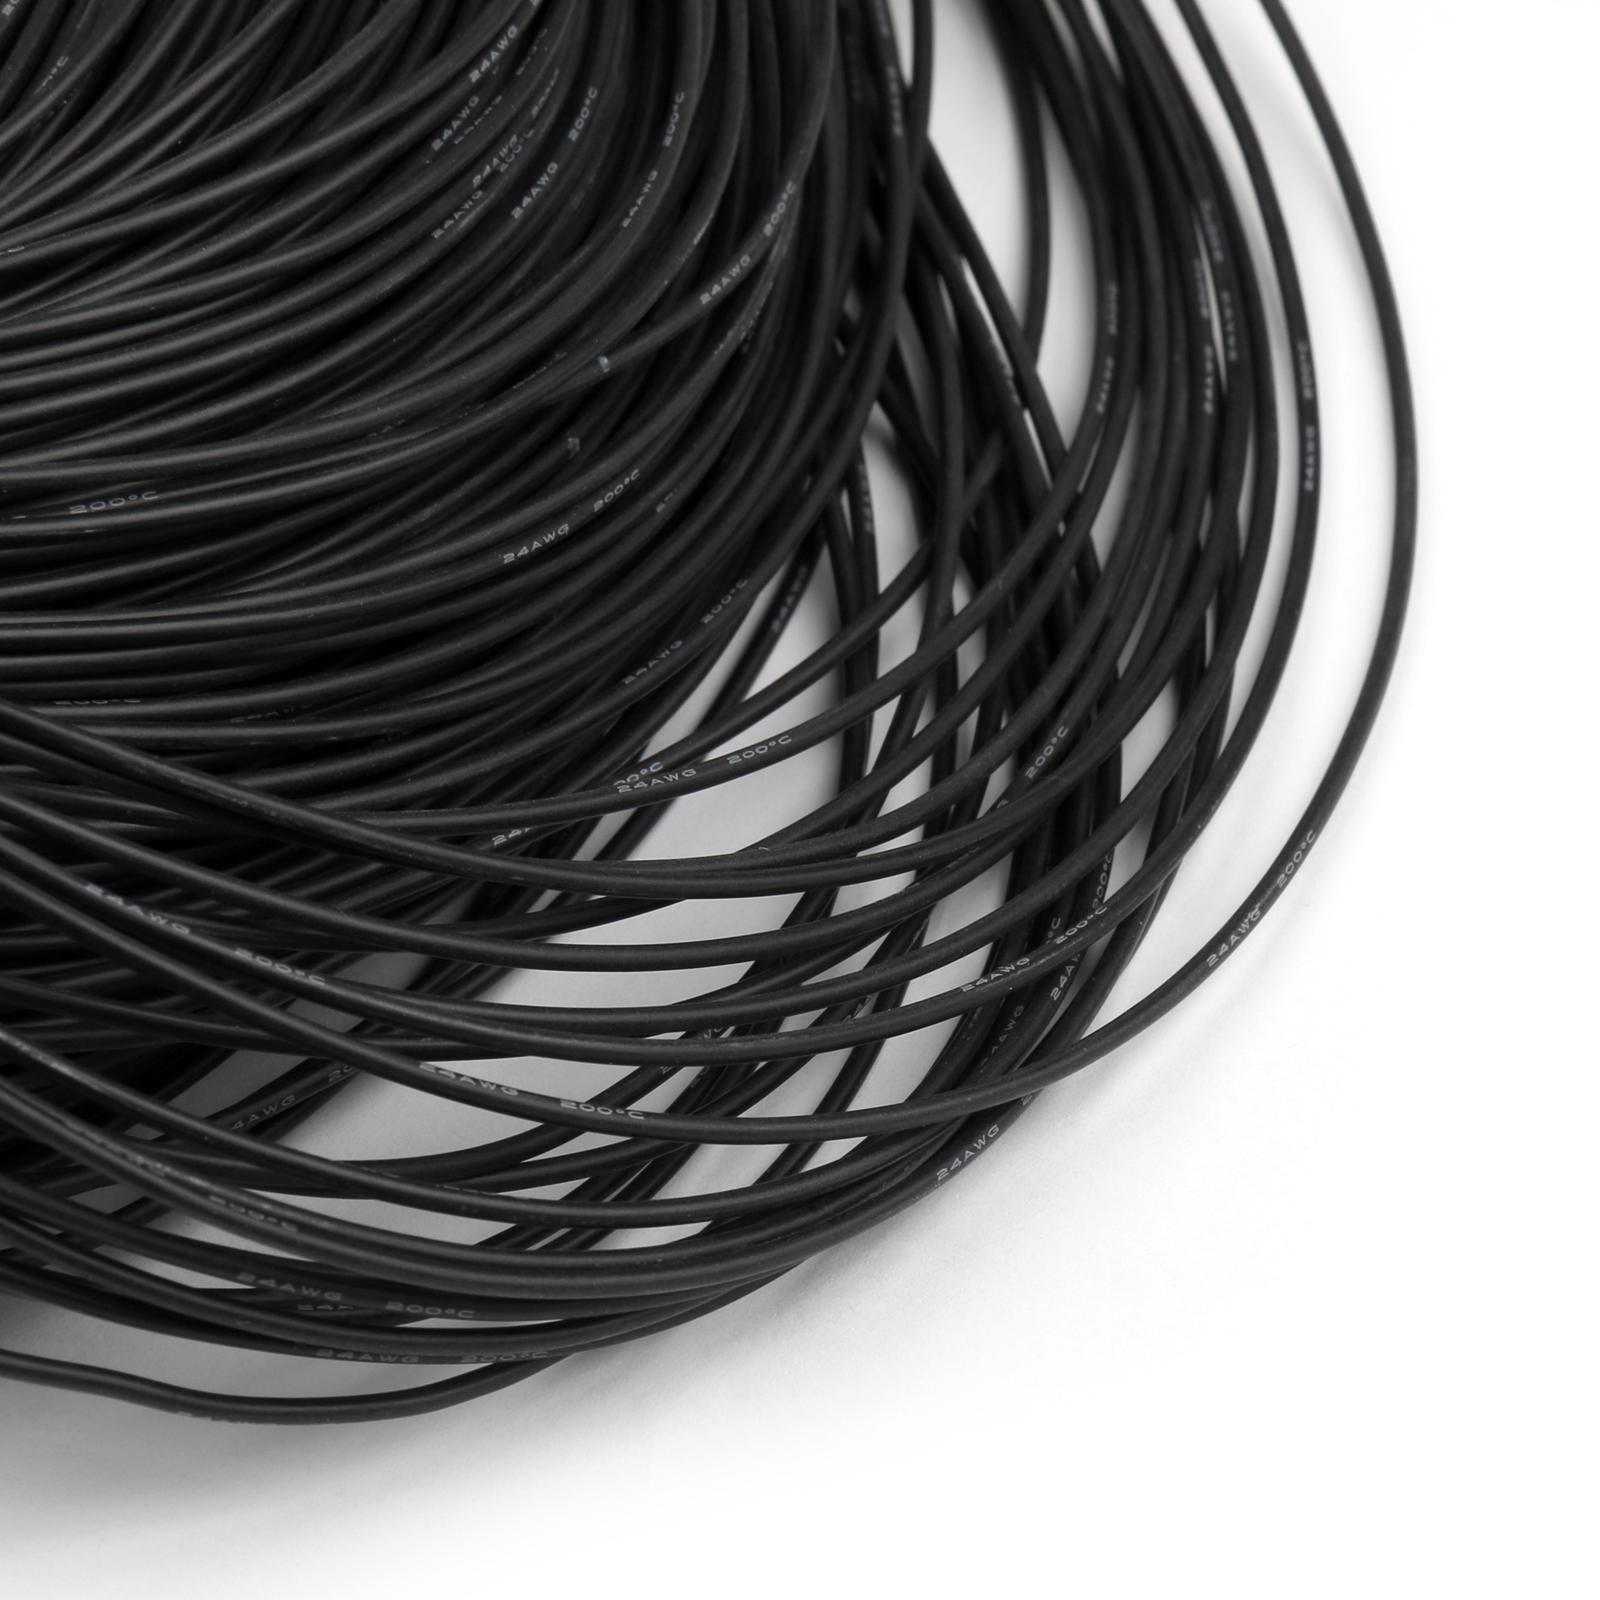 5m Flexible Stranded Silicone Rubber Wire Cable 24awg Gauge Od 15mm Net American 5 Type 2 Conductor Strand 3 4 No Mm 40 08ts Outer Dia